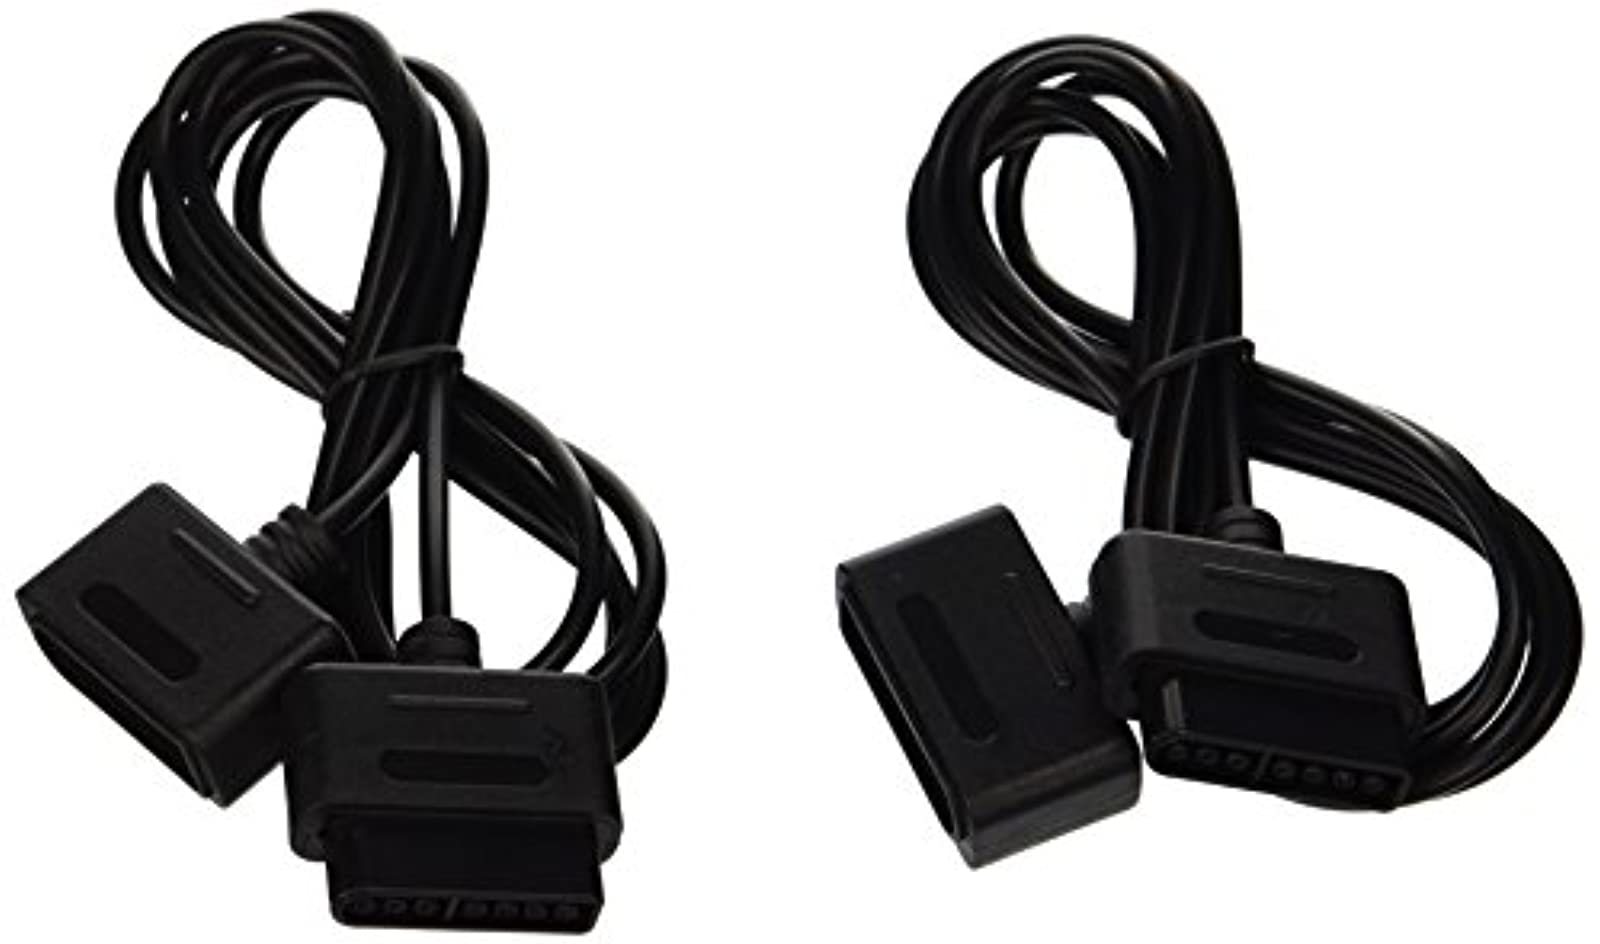 2 X Extension Cable For Super Nintendo SNES Controller For Super Nintendo SNES